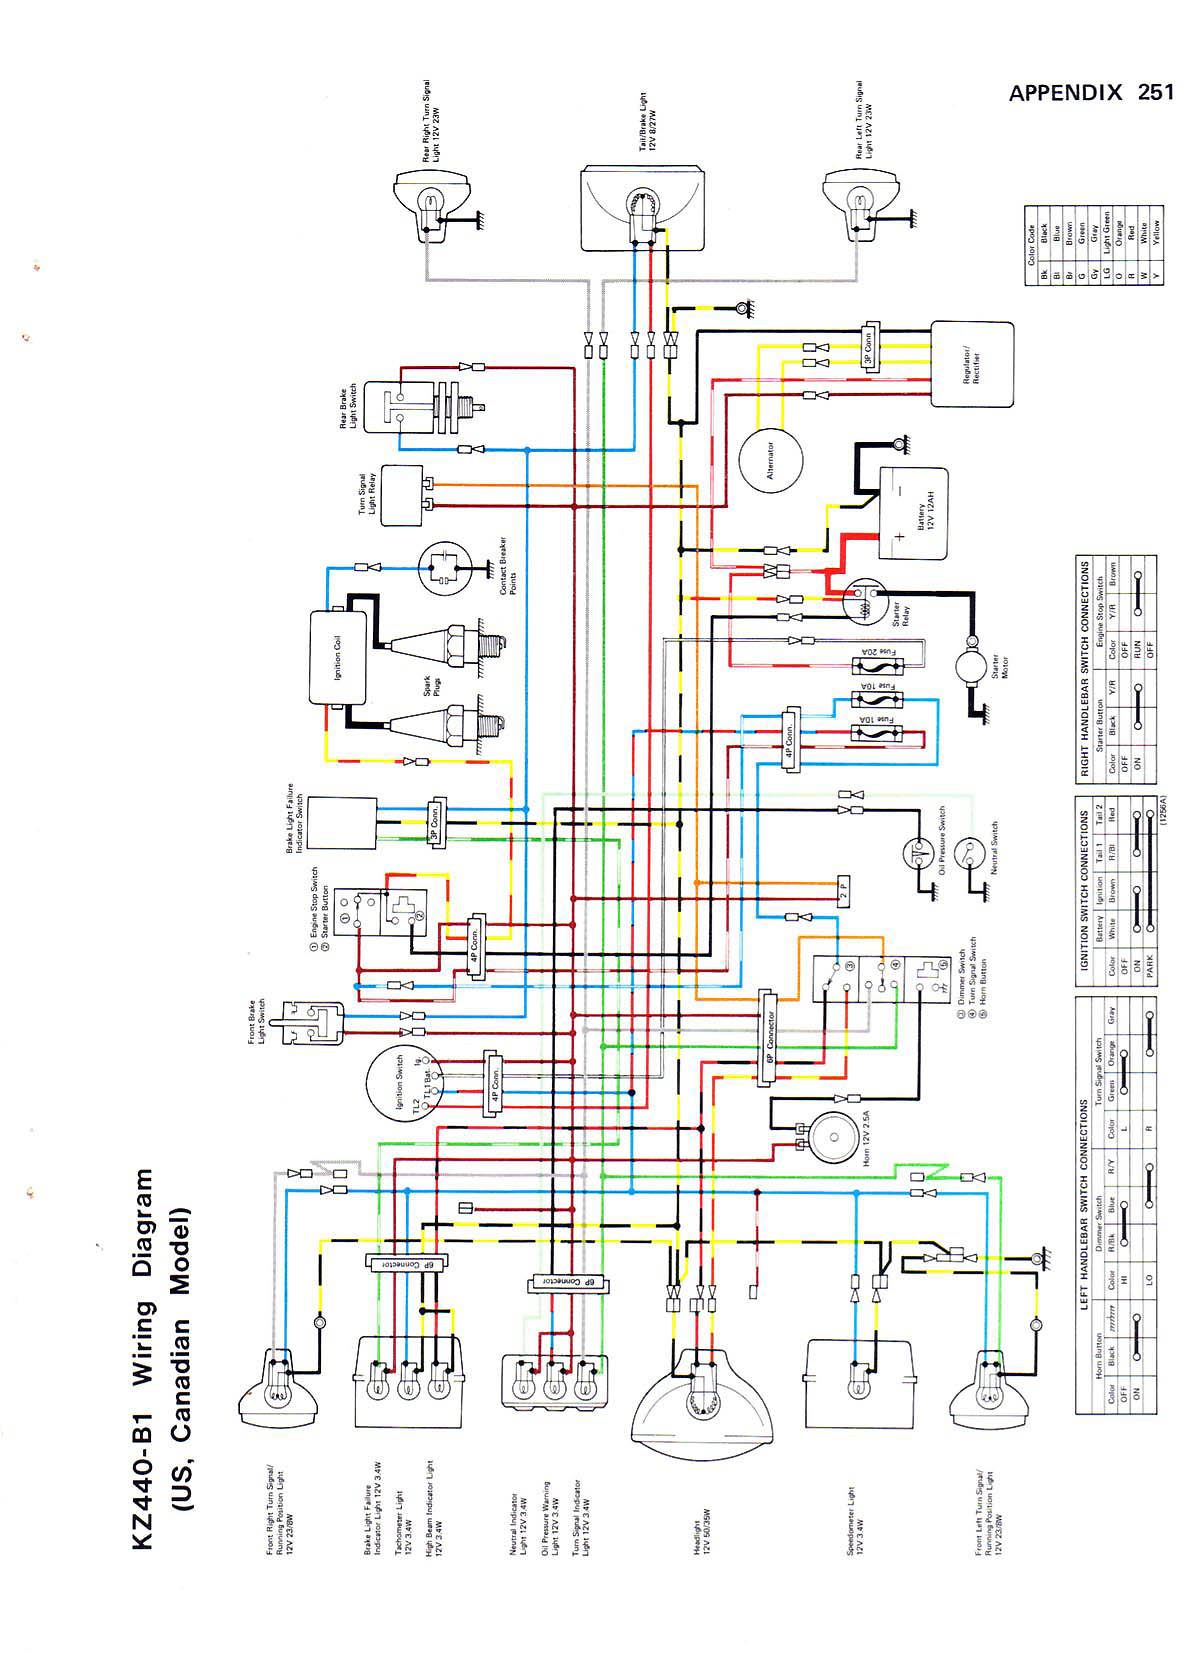 Kawasaki KZ 440 %2780 a %2782 Service Manual_Page_249 kz400 wiring diagram 1983 kawasaki motorcycle wiring diagrams  at crackthecode.co